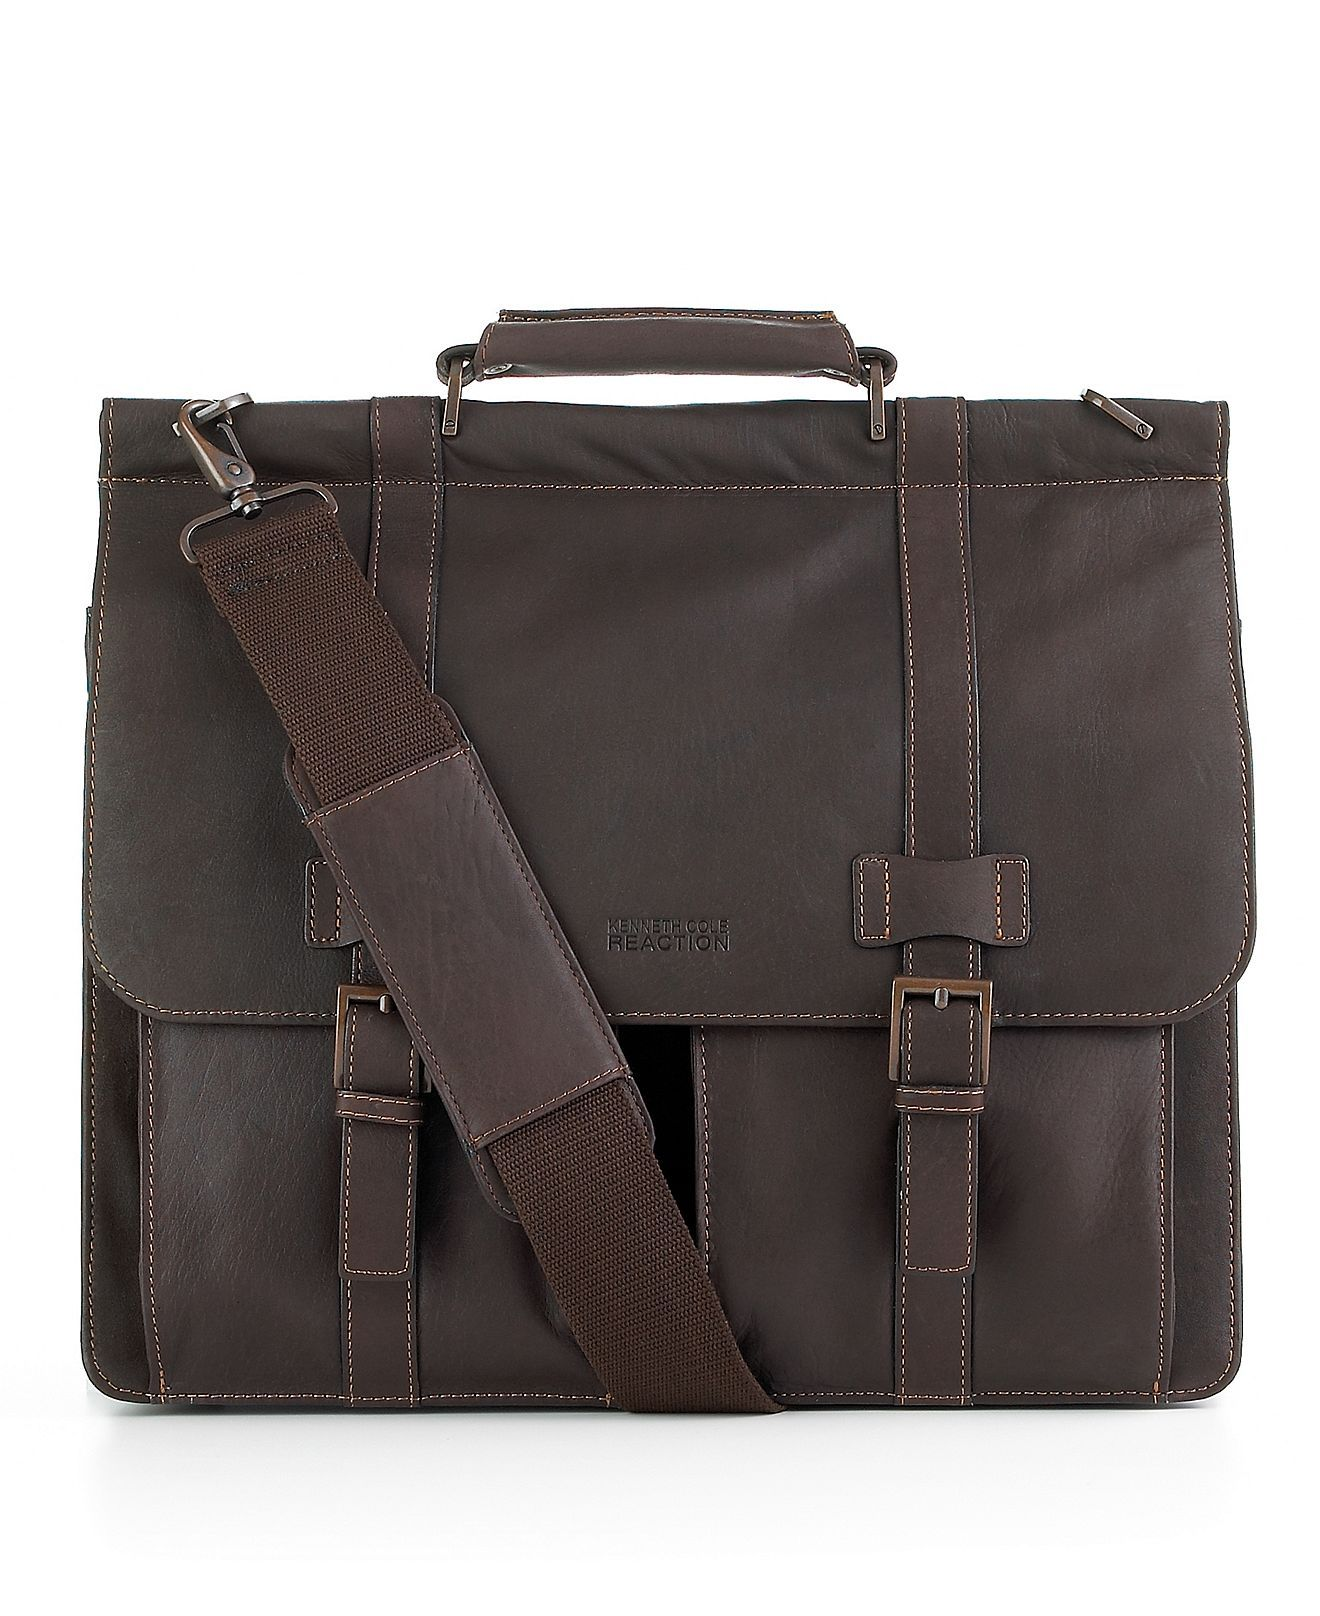 Kenneth Cole Reaction Briefcase, Columbia Dowl Rod Double Gusset Portfolio  - Mens Men s Bags   Backpacks - Macy s 52b22f9920